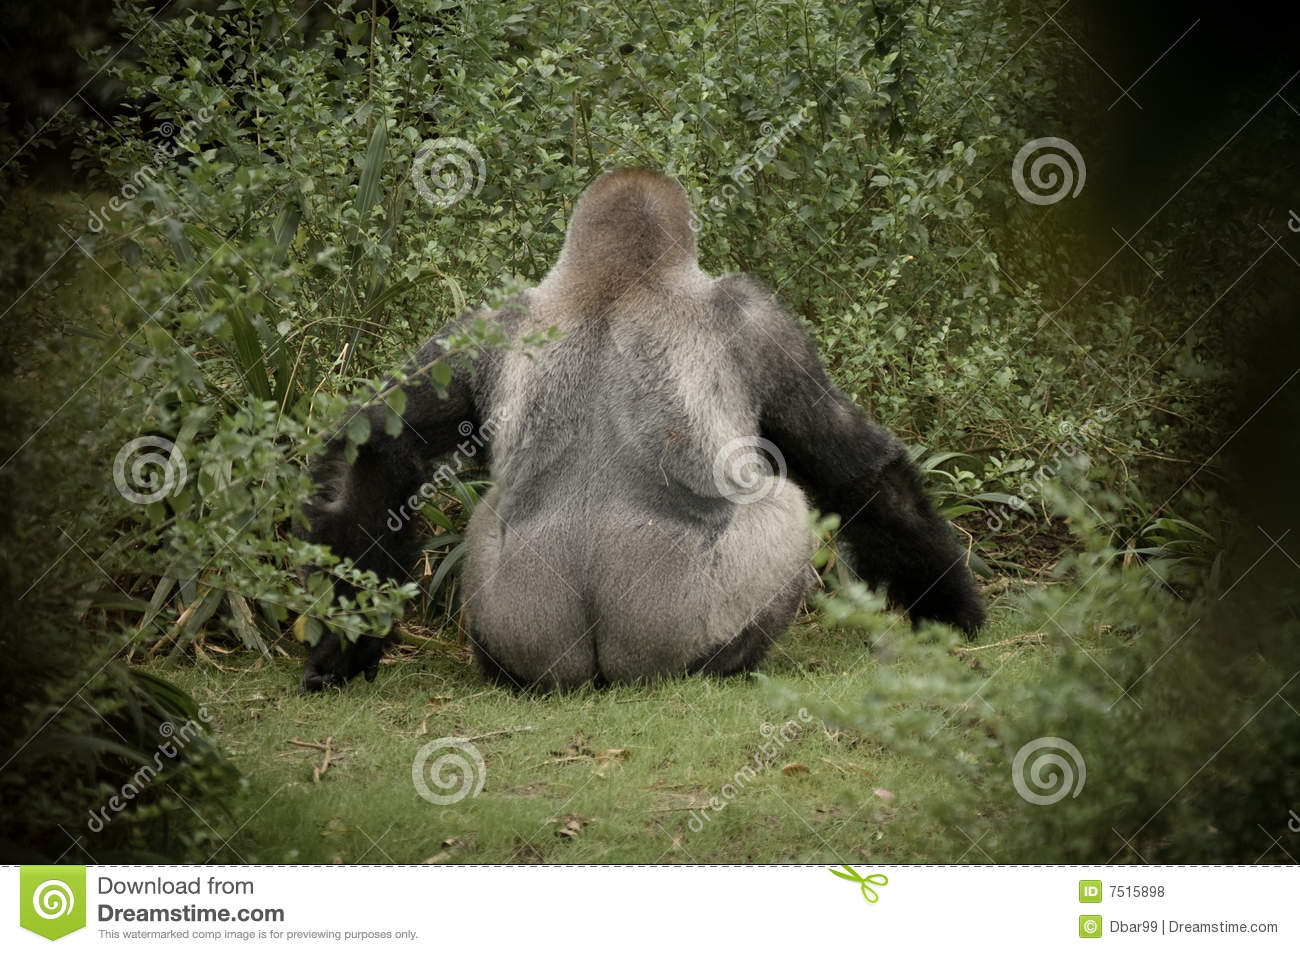 Extended Rear Facing >> Gorilla Facing Away From Camera Showing Stock Photo - Image of funny, rain: 7515898